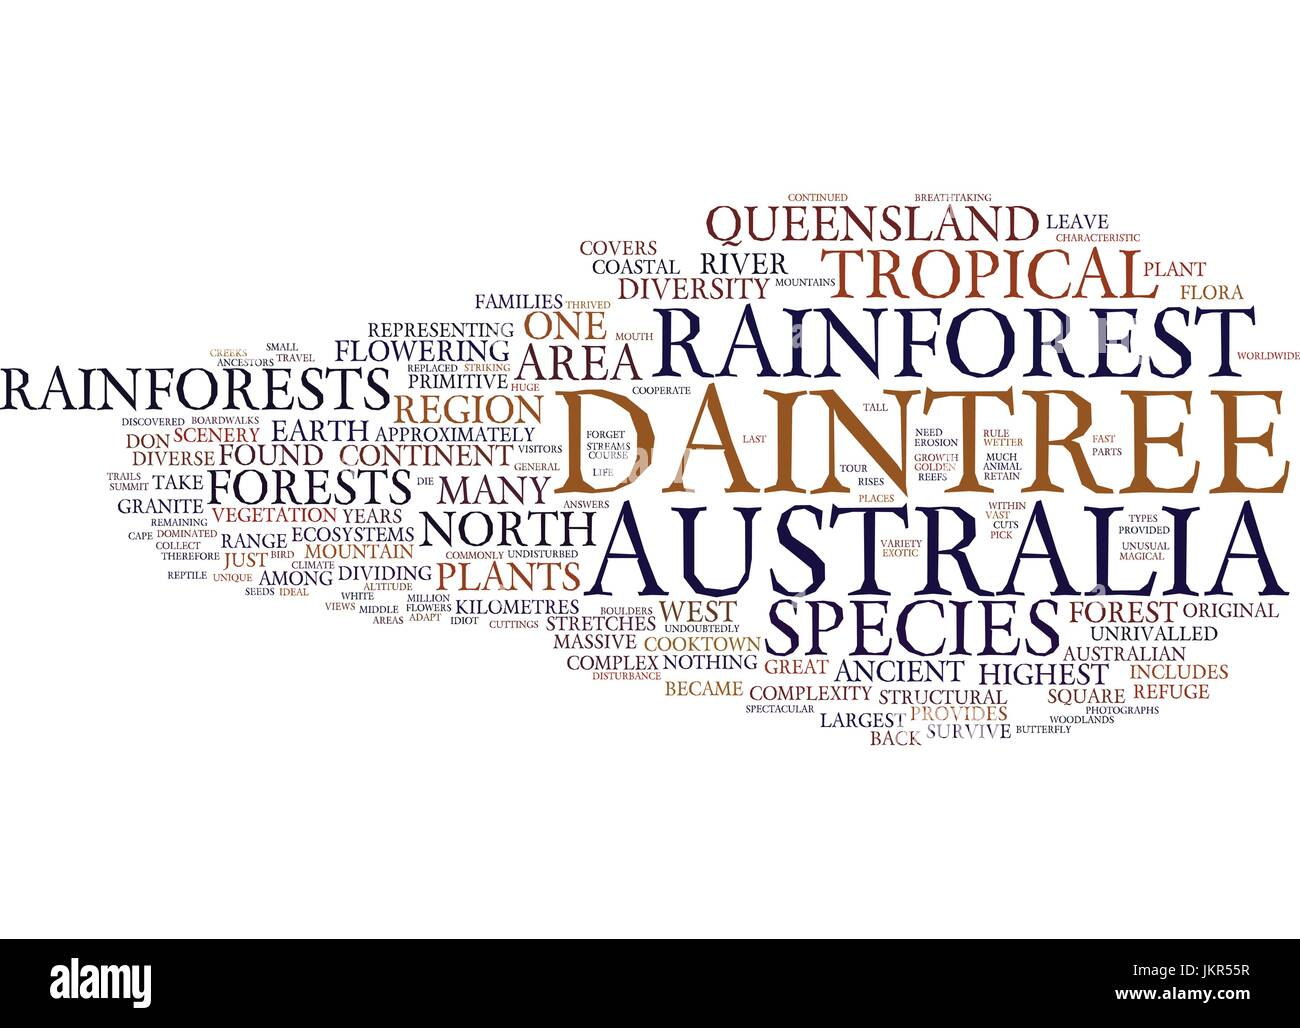 THE ANCIENT BEAUTY OF AUSTRALIA S DAINTREE RAINFOREST Text Background Word Cloud Concept - Stock Vector